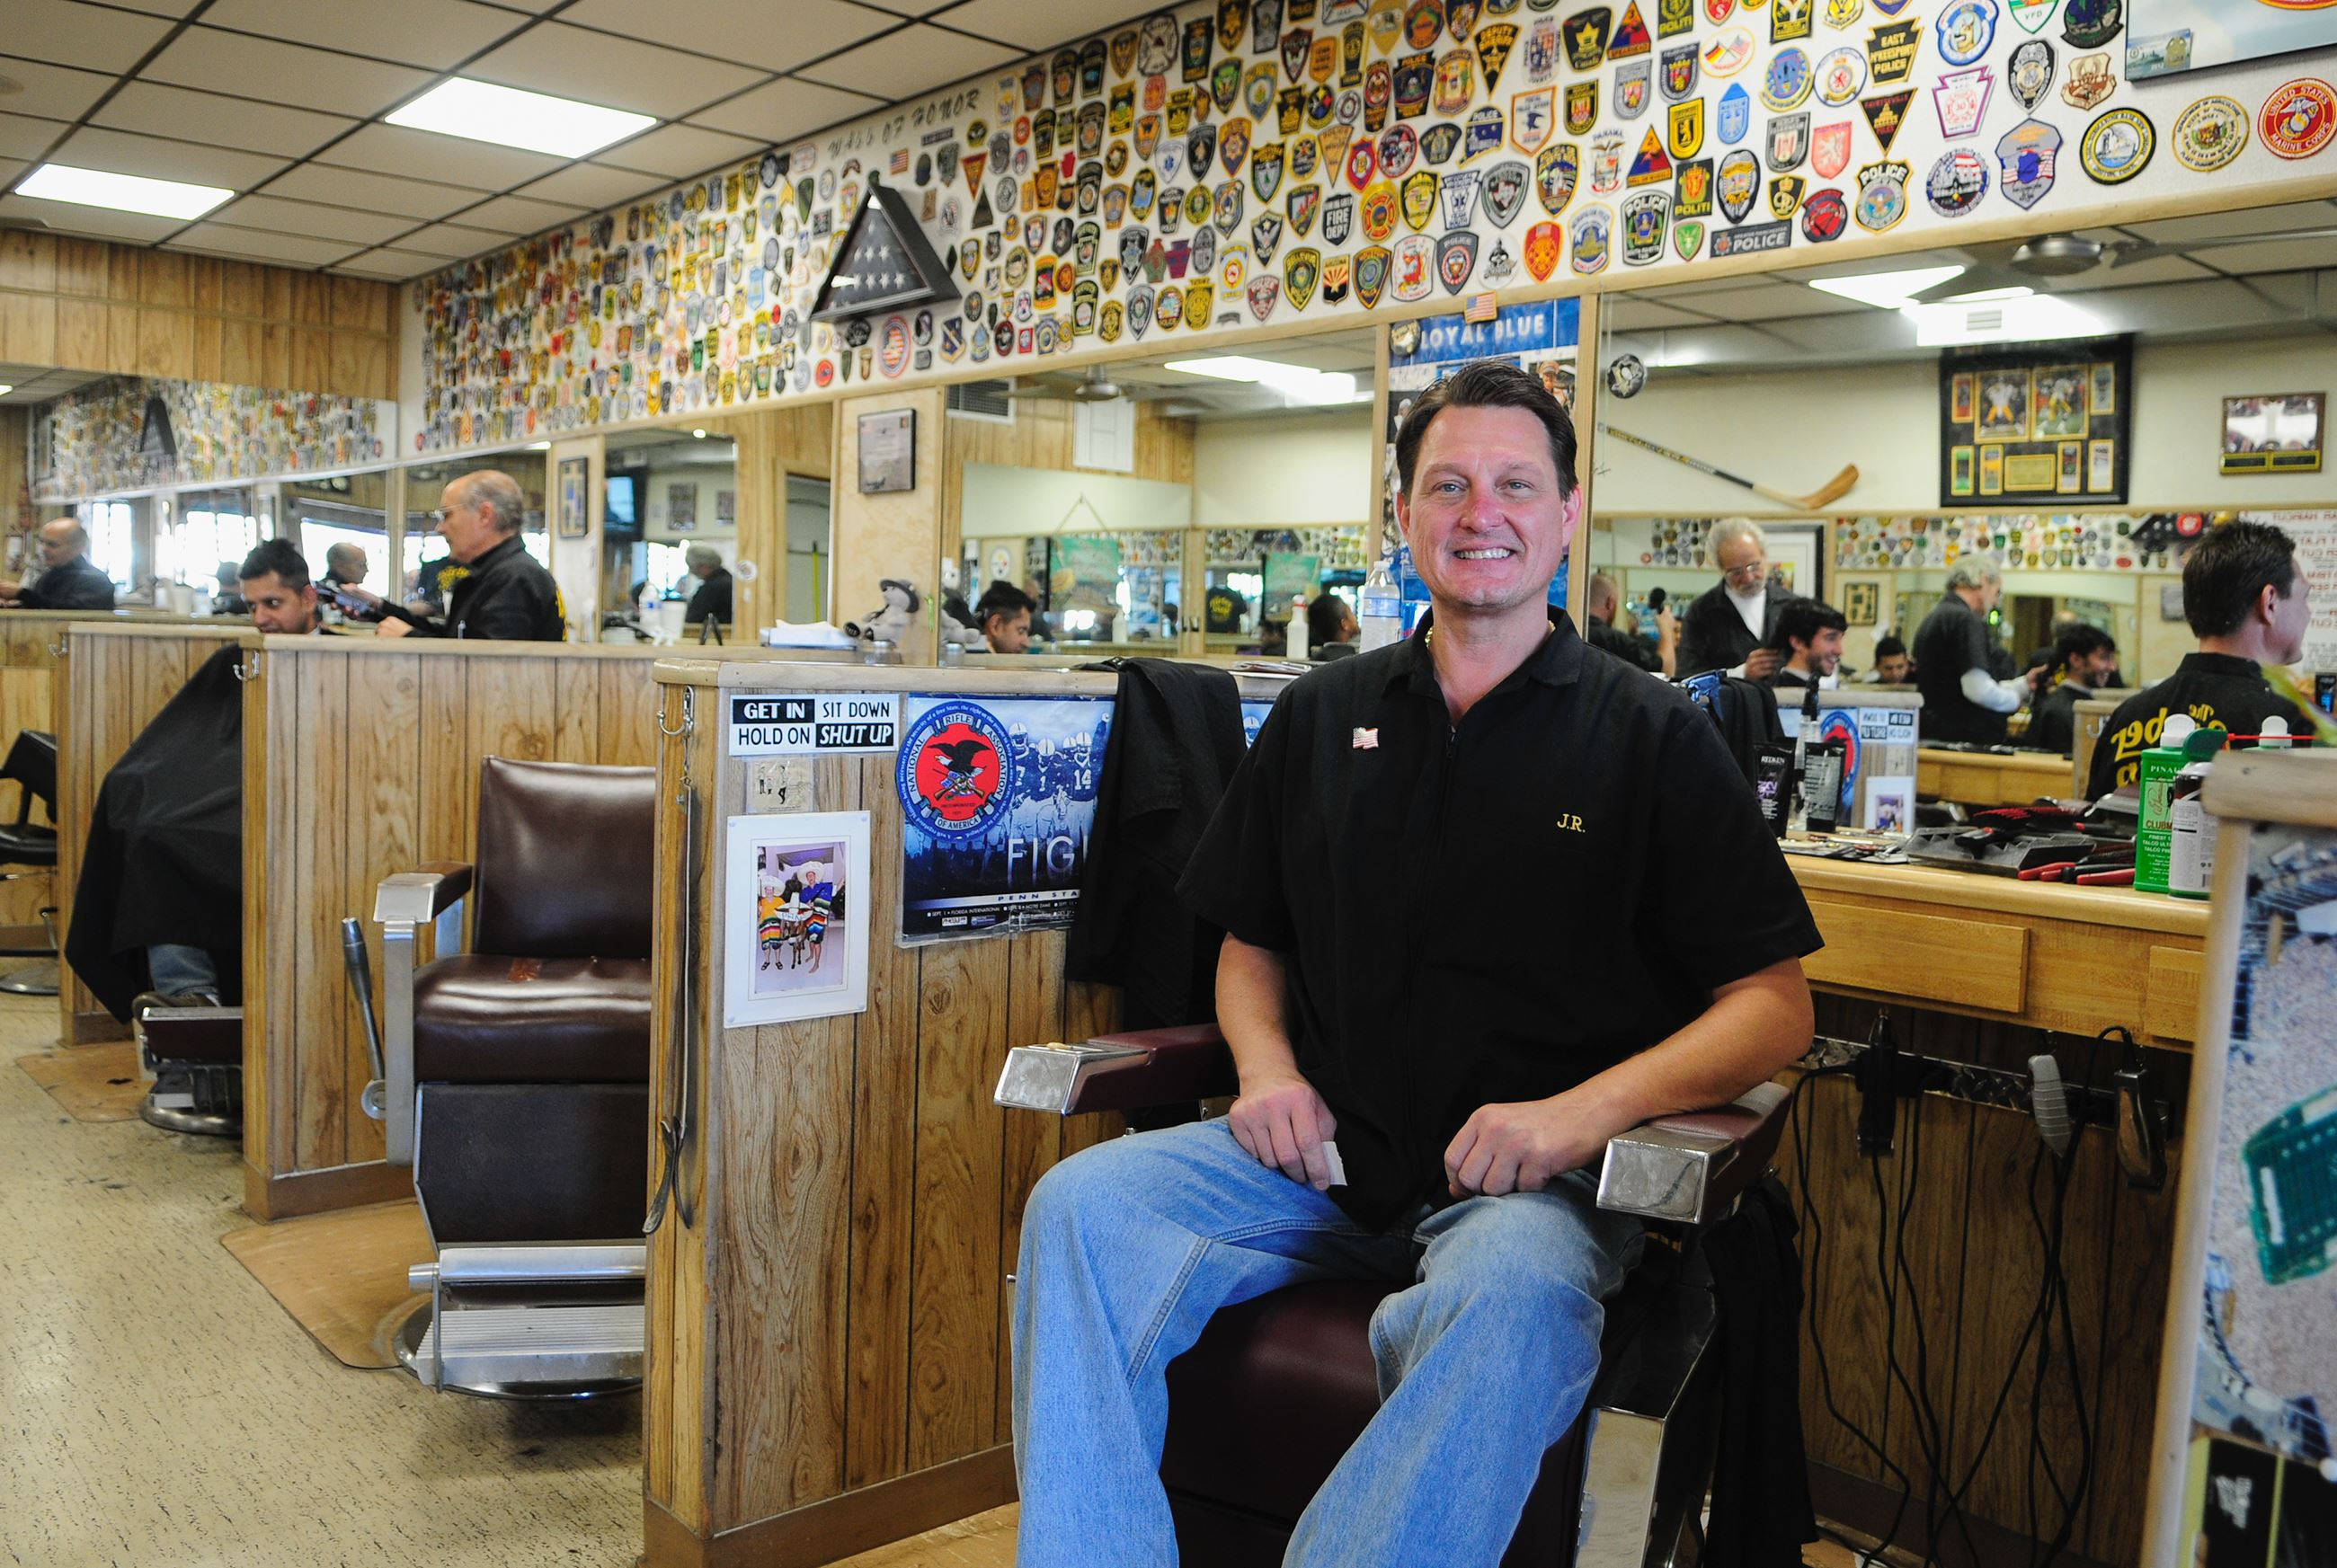 ... Barber Shop has stood test of time in Bridgeville Pittsburgh Post